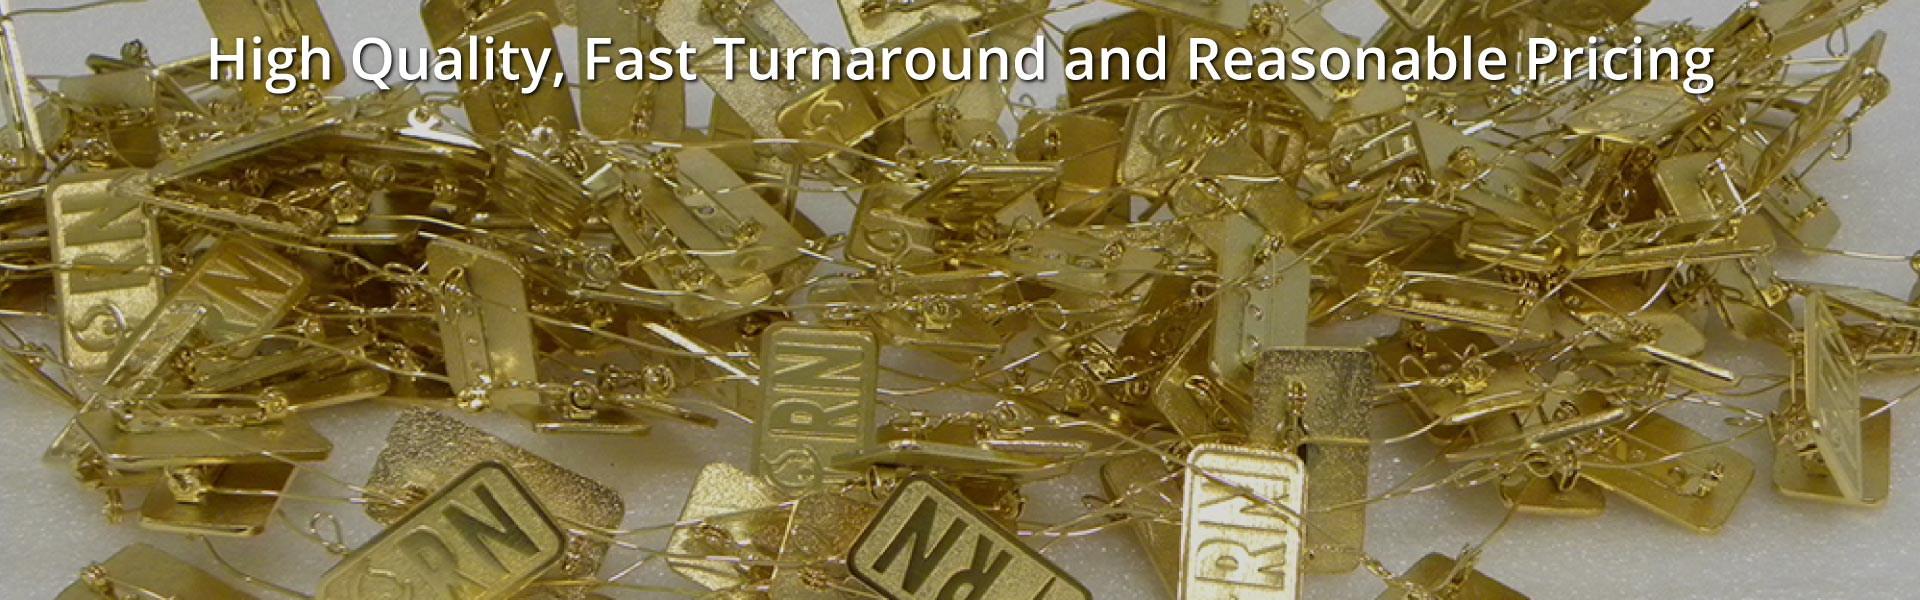 High Quality, Fast Turnaround and Reasonable Pricing | Gold plated metal